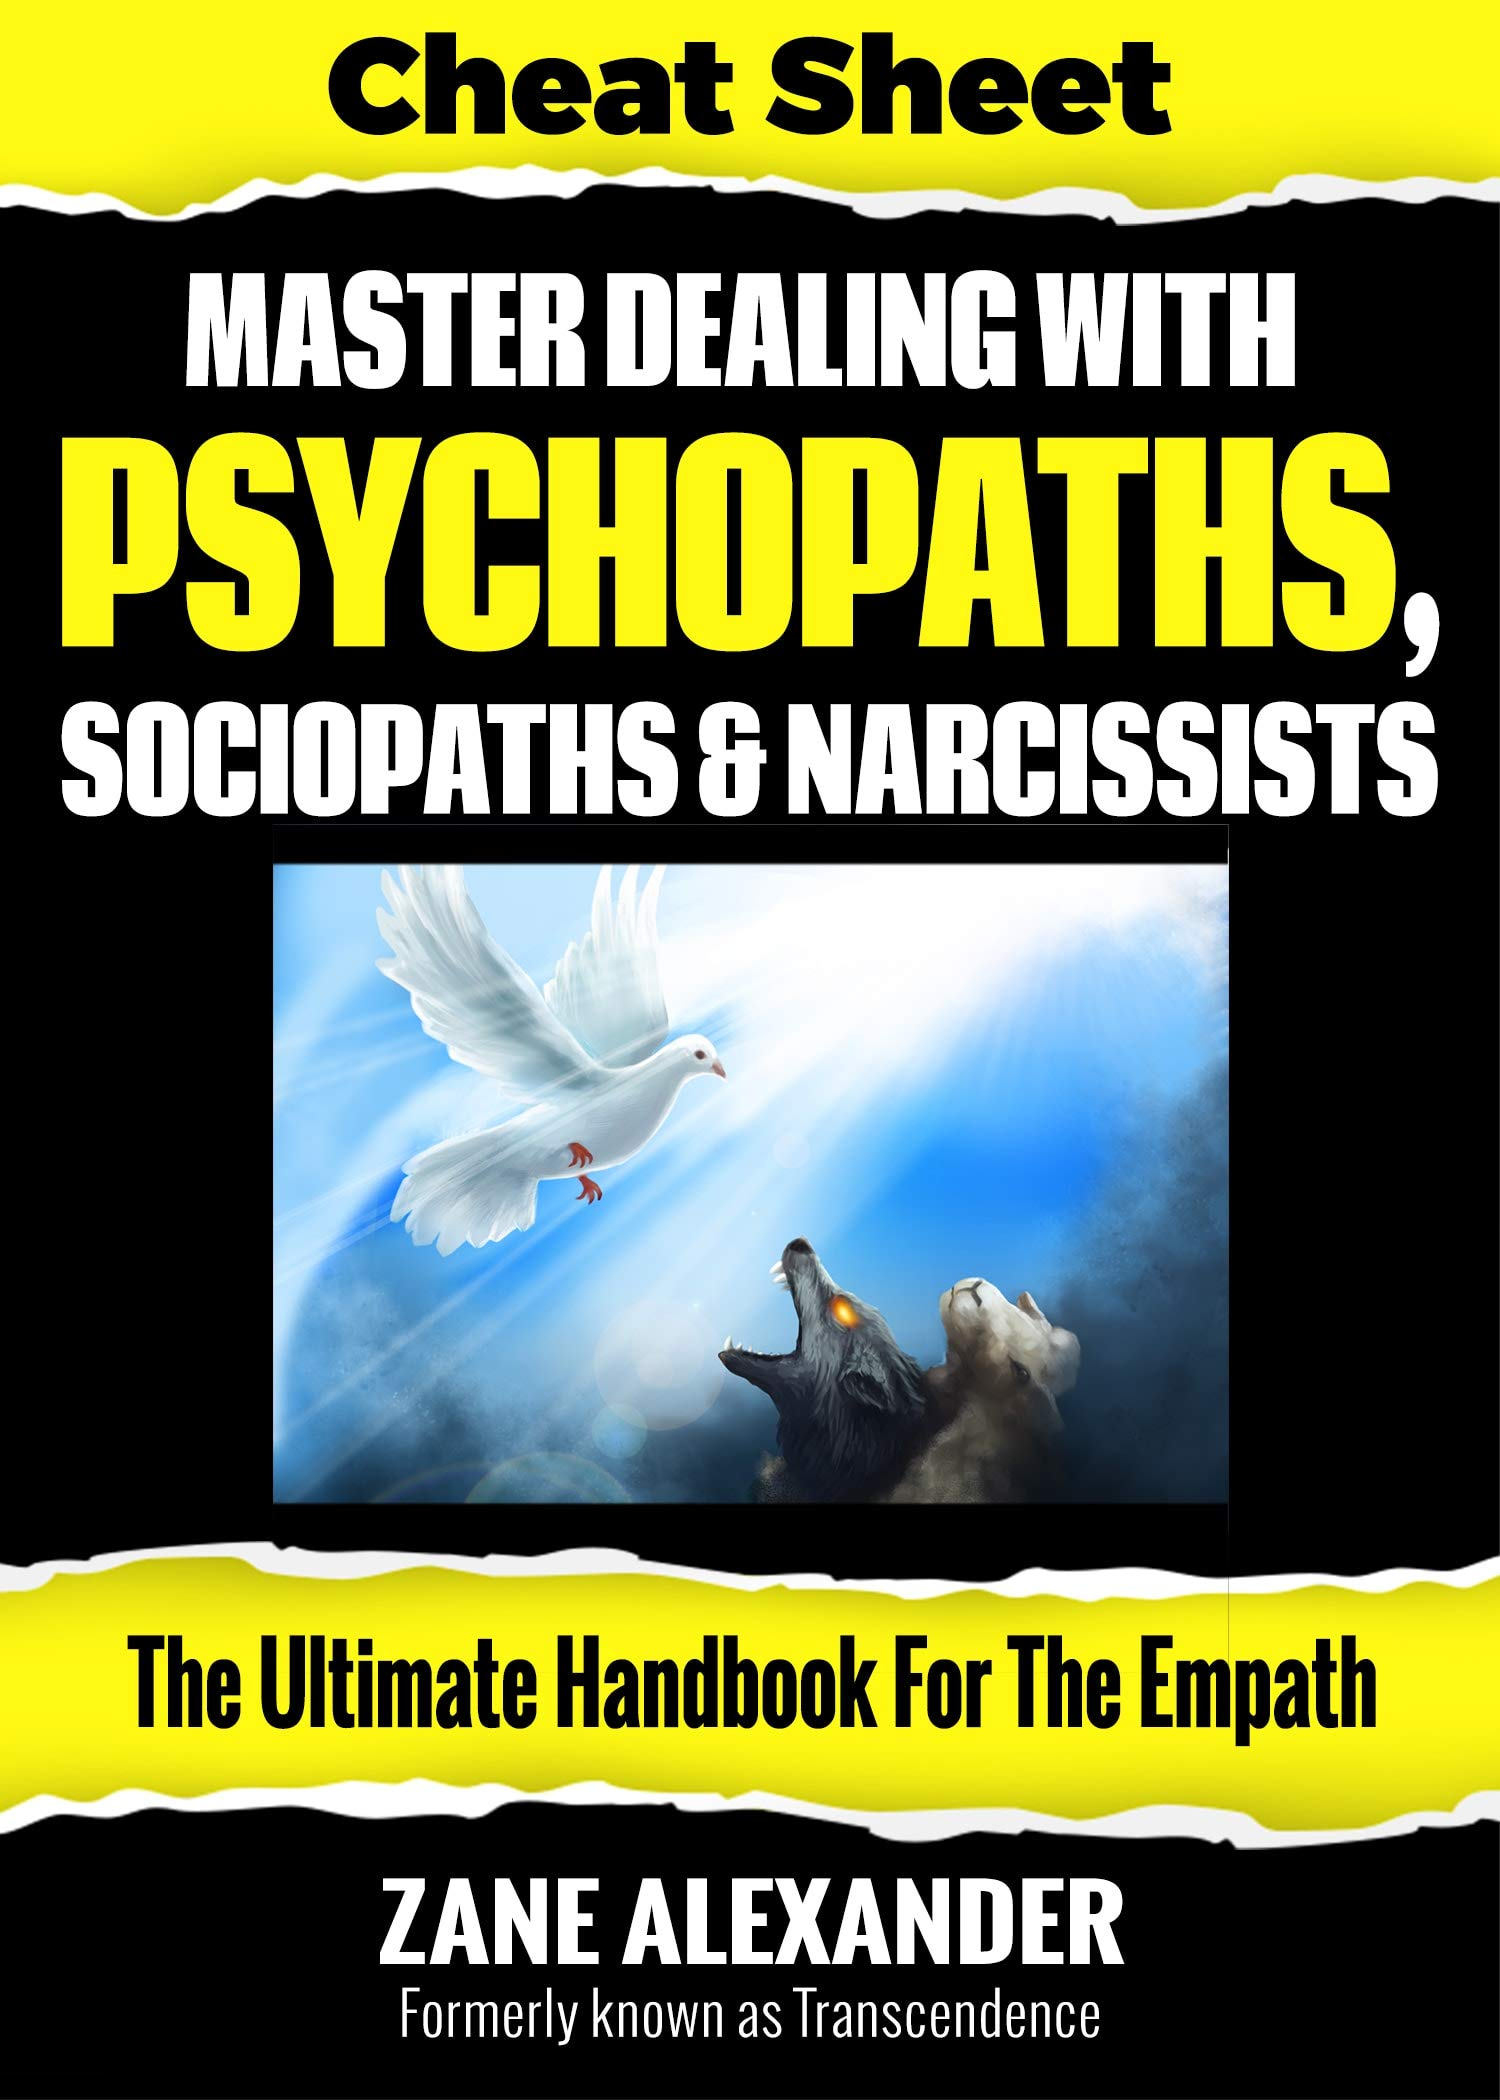 Master Dealing With Psychopaths Sociopaths And Narcissists   The Ultimate Handbook For The Empath  English Edition